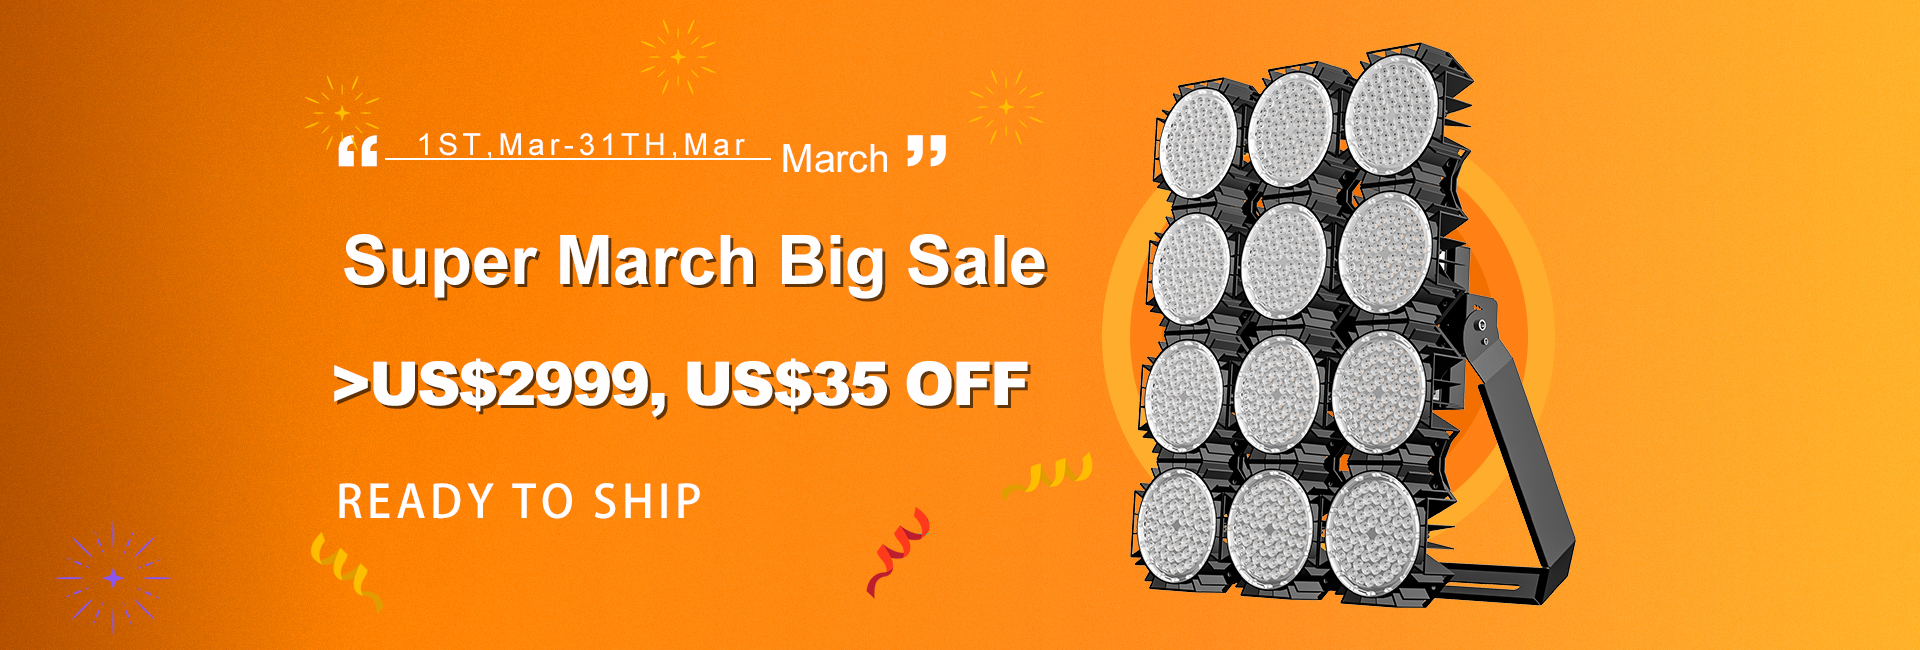 Super March Big SALE for Private Mold products